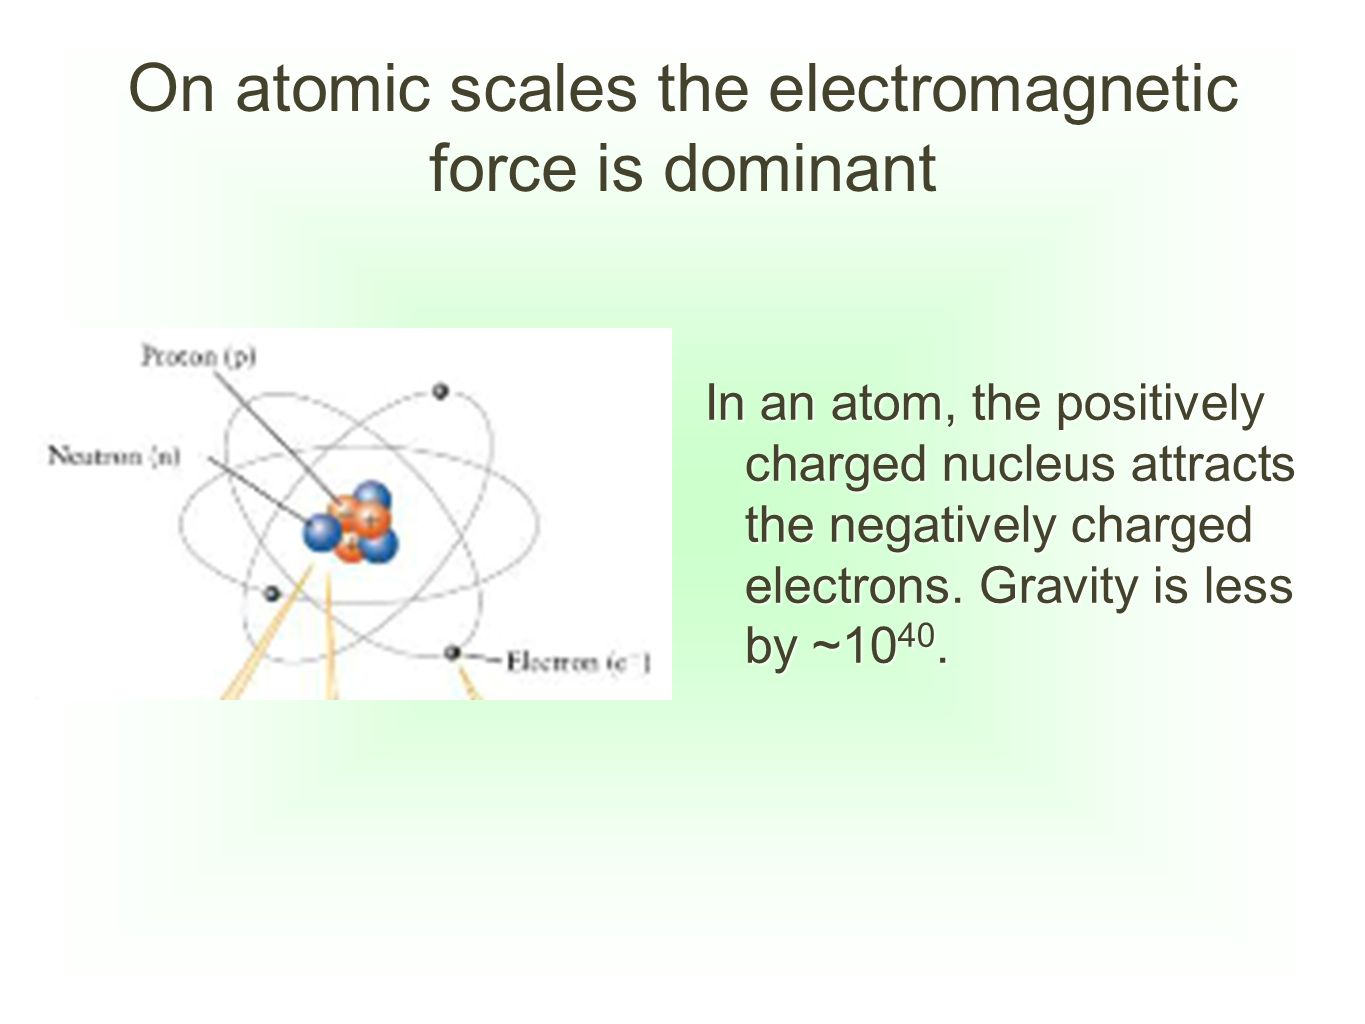 On atomic scales the electromagnetic force is dominant